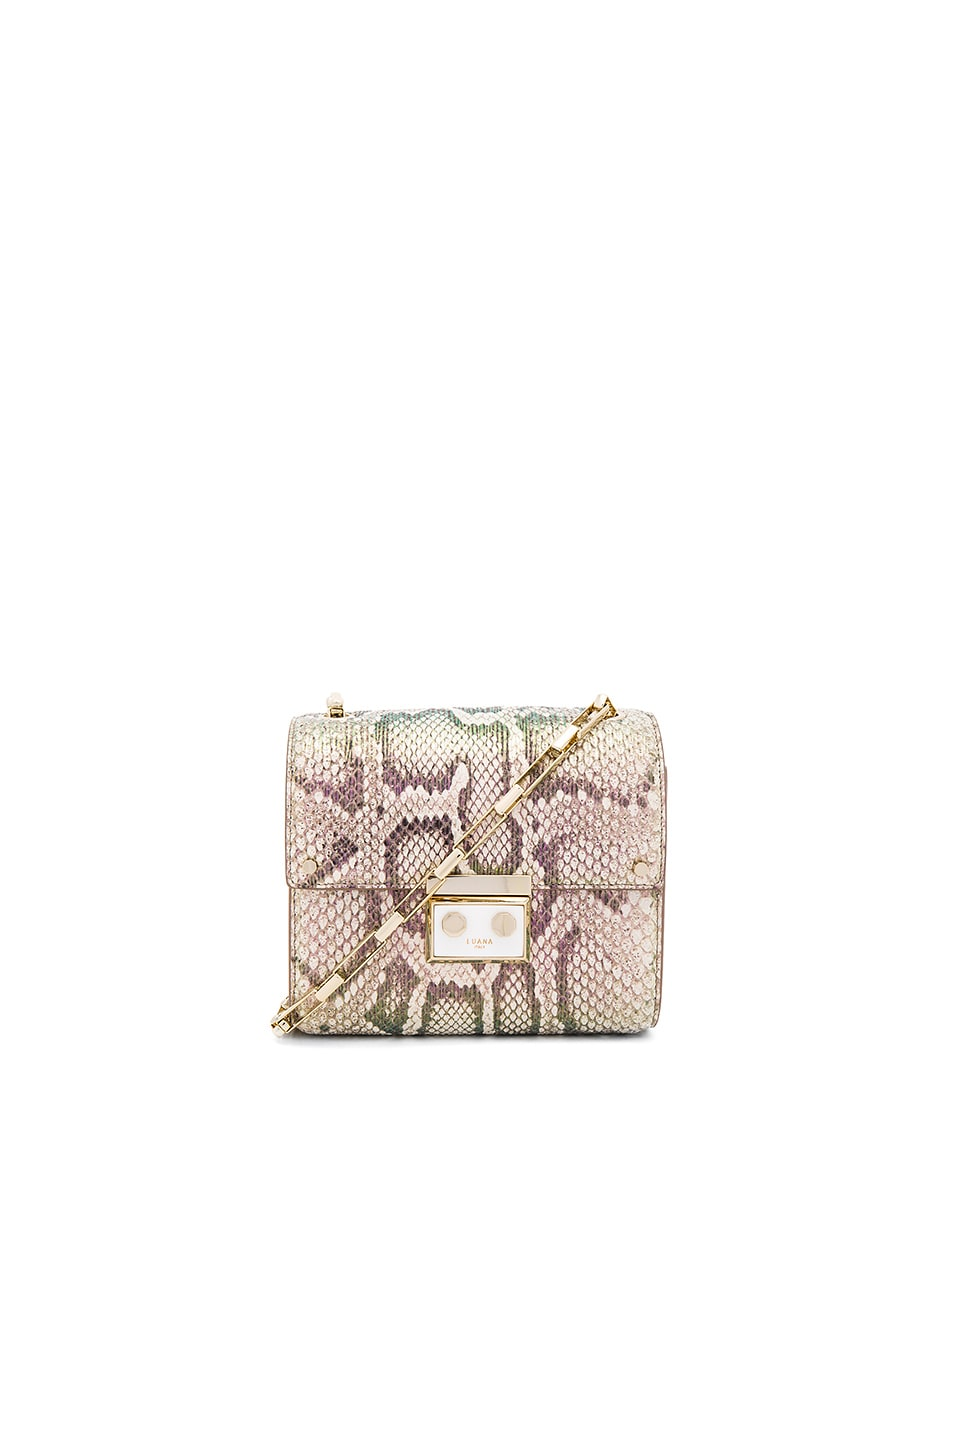 Luana Italy Anais Mini Shoulder Bag in Candy Snake